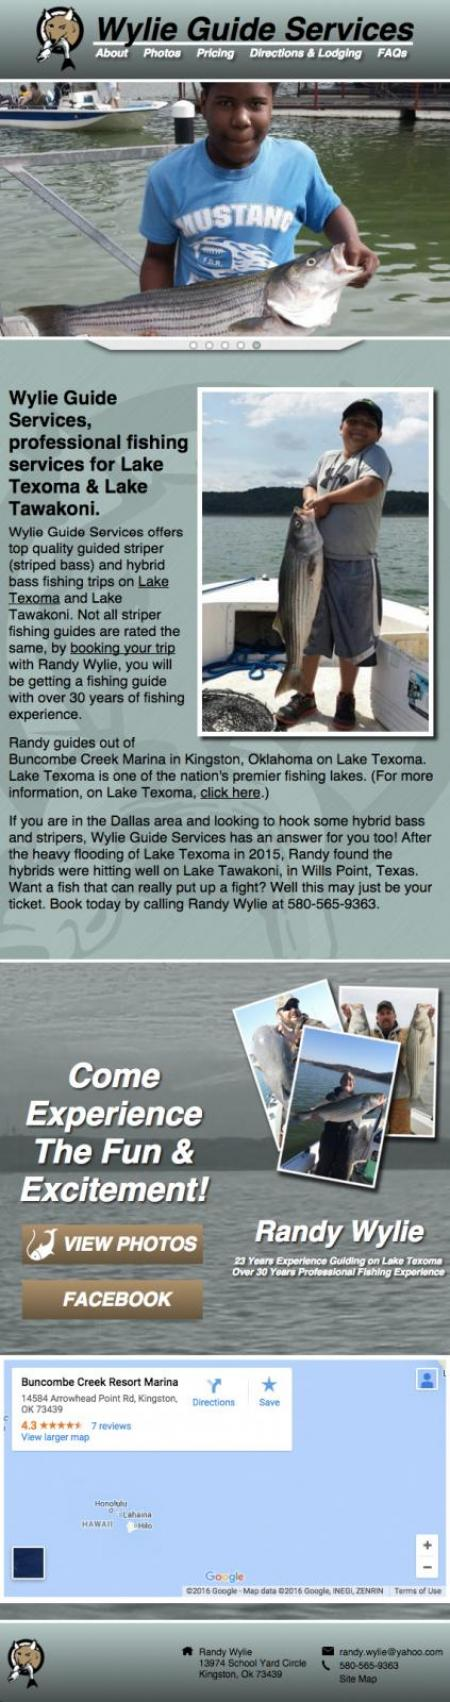 Wylie Guide Services - Tablet